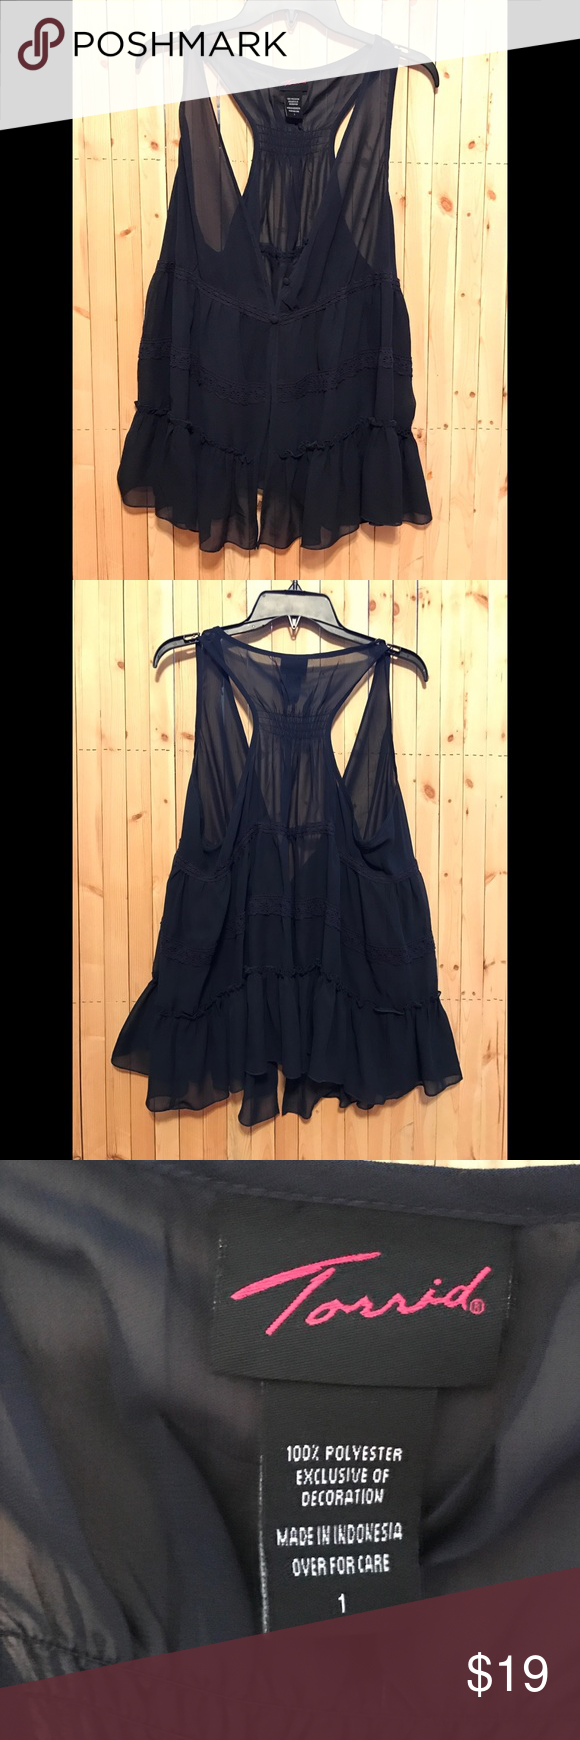 Torrid Navy Blue Sheer Sleeveless Cardigan sz 1 | Torrid, Lace ...